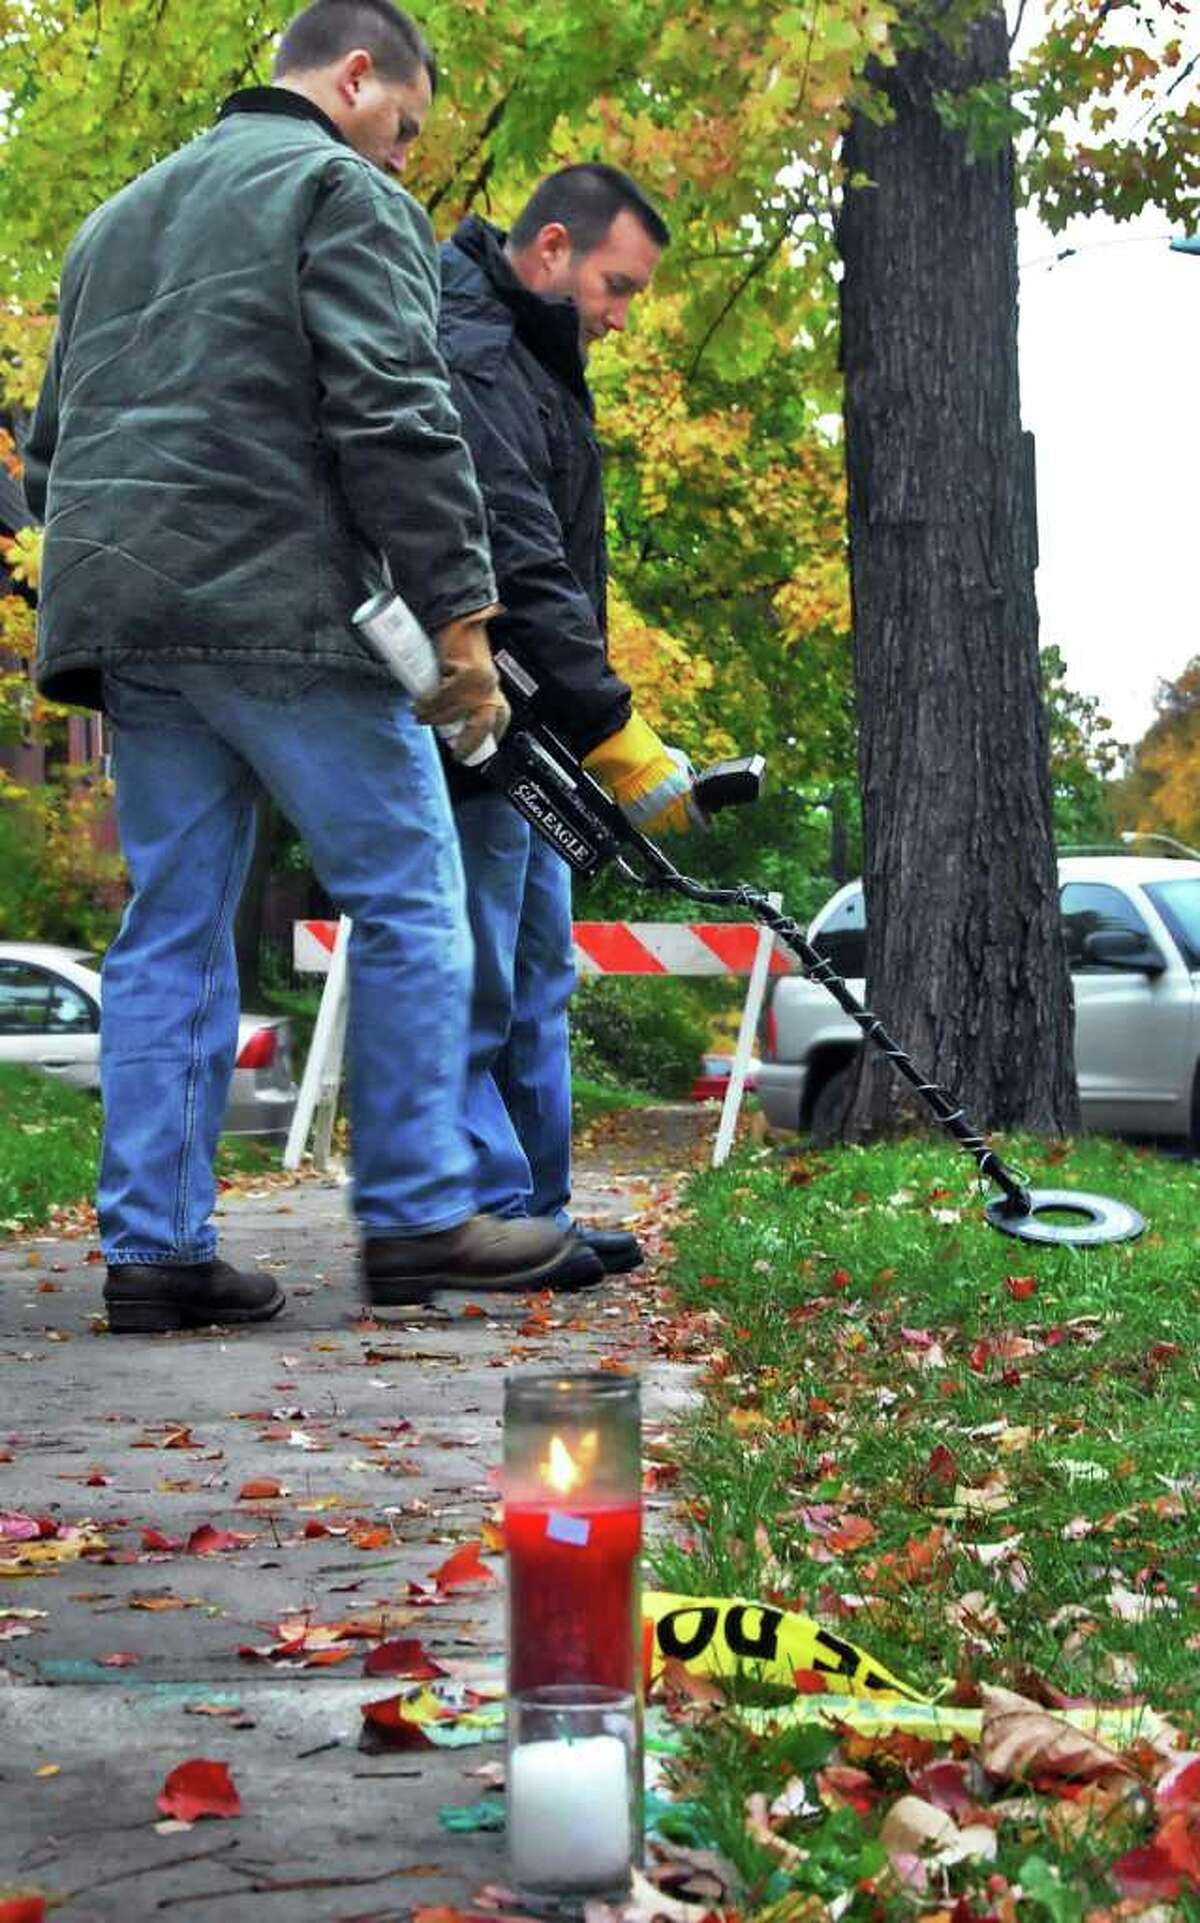 The Albany Police Forensic Unit's Mark Sauter, left, and Victor Pizzola search for evidence near the makeshift memorial for UAlbany student Richard Bailey, who was shot and killed October 22, 2008, near the corner of Yates and South Lake in Albany. (Times Union archive/John Carl D'Annibale)